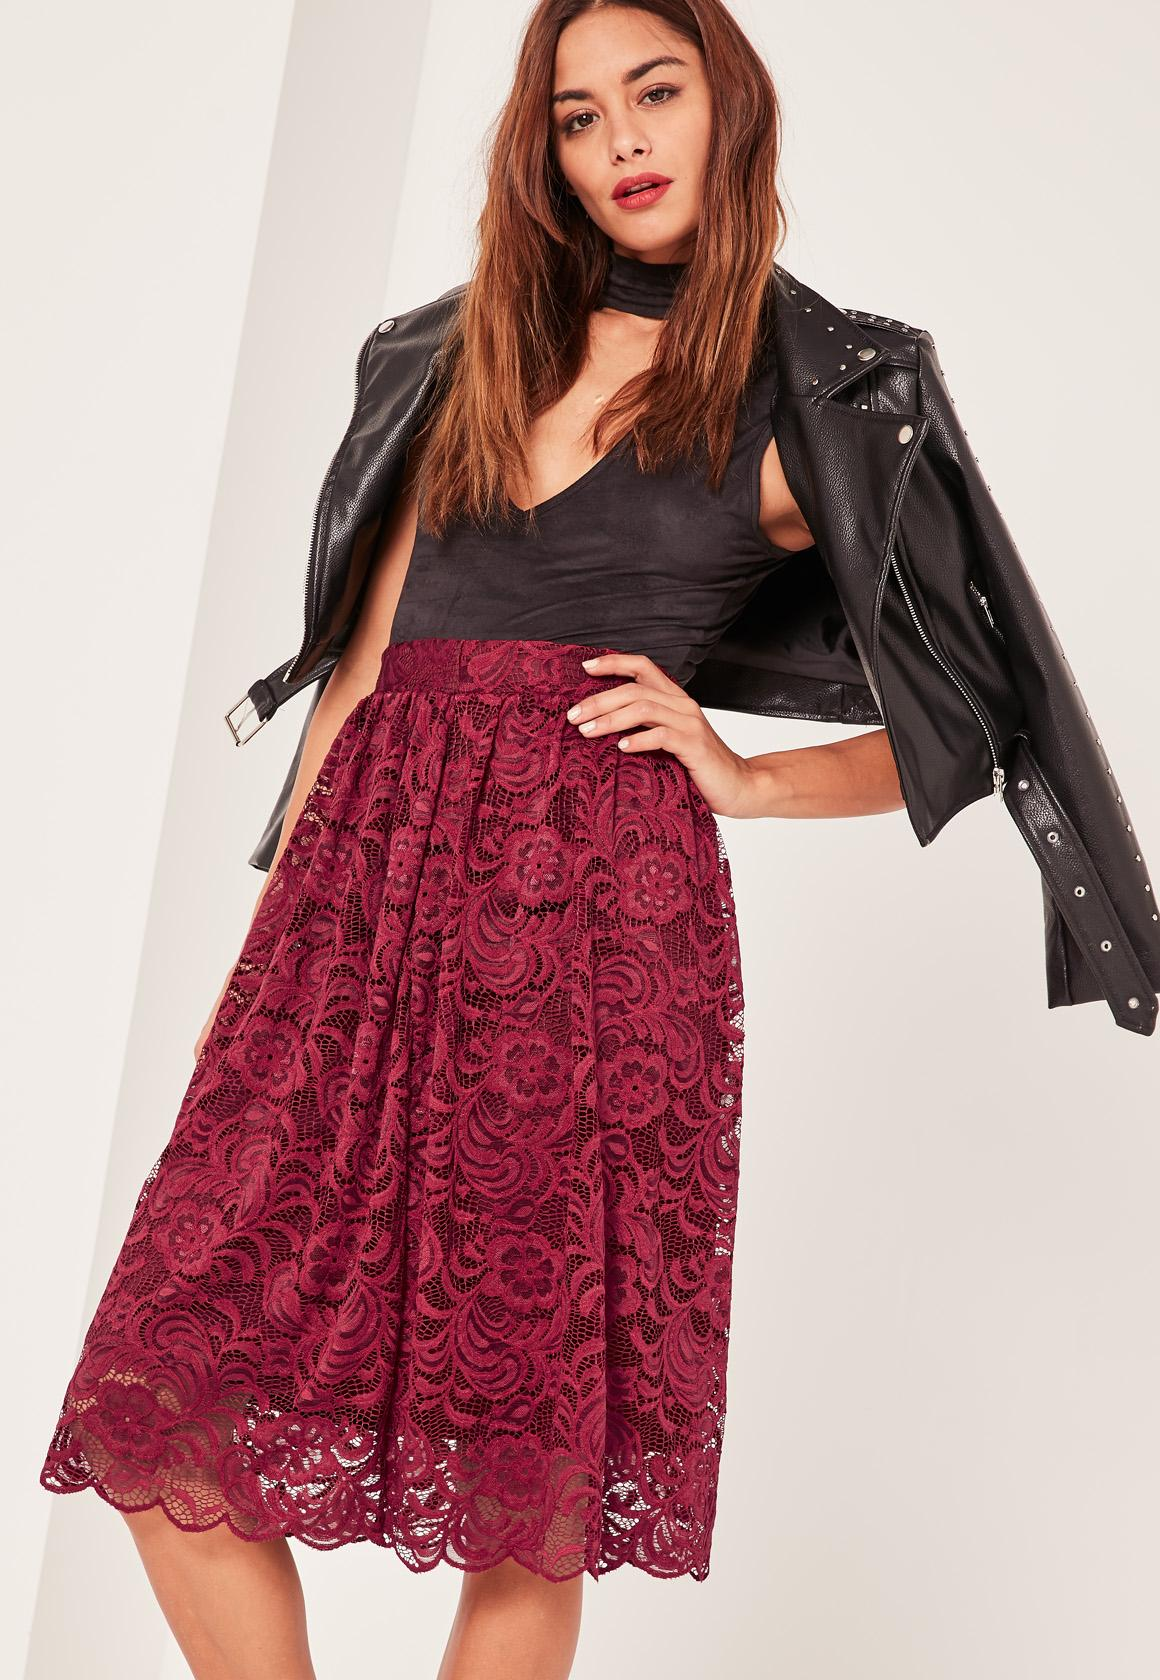 Caroline Receveur Red Full Lace Midi Skirt | Missguided